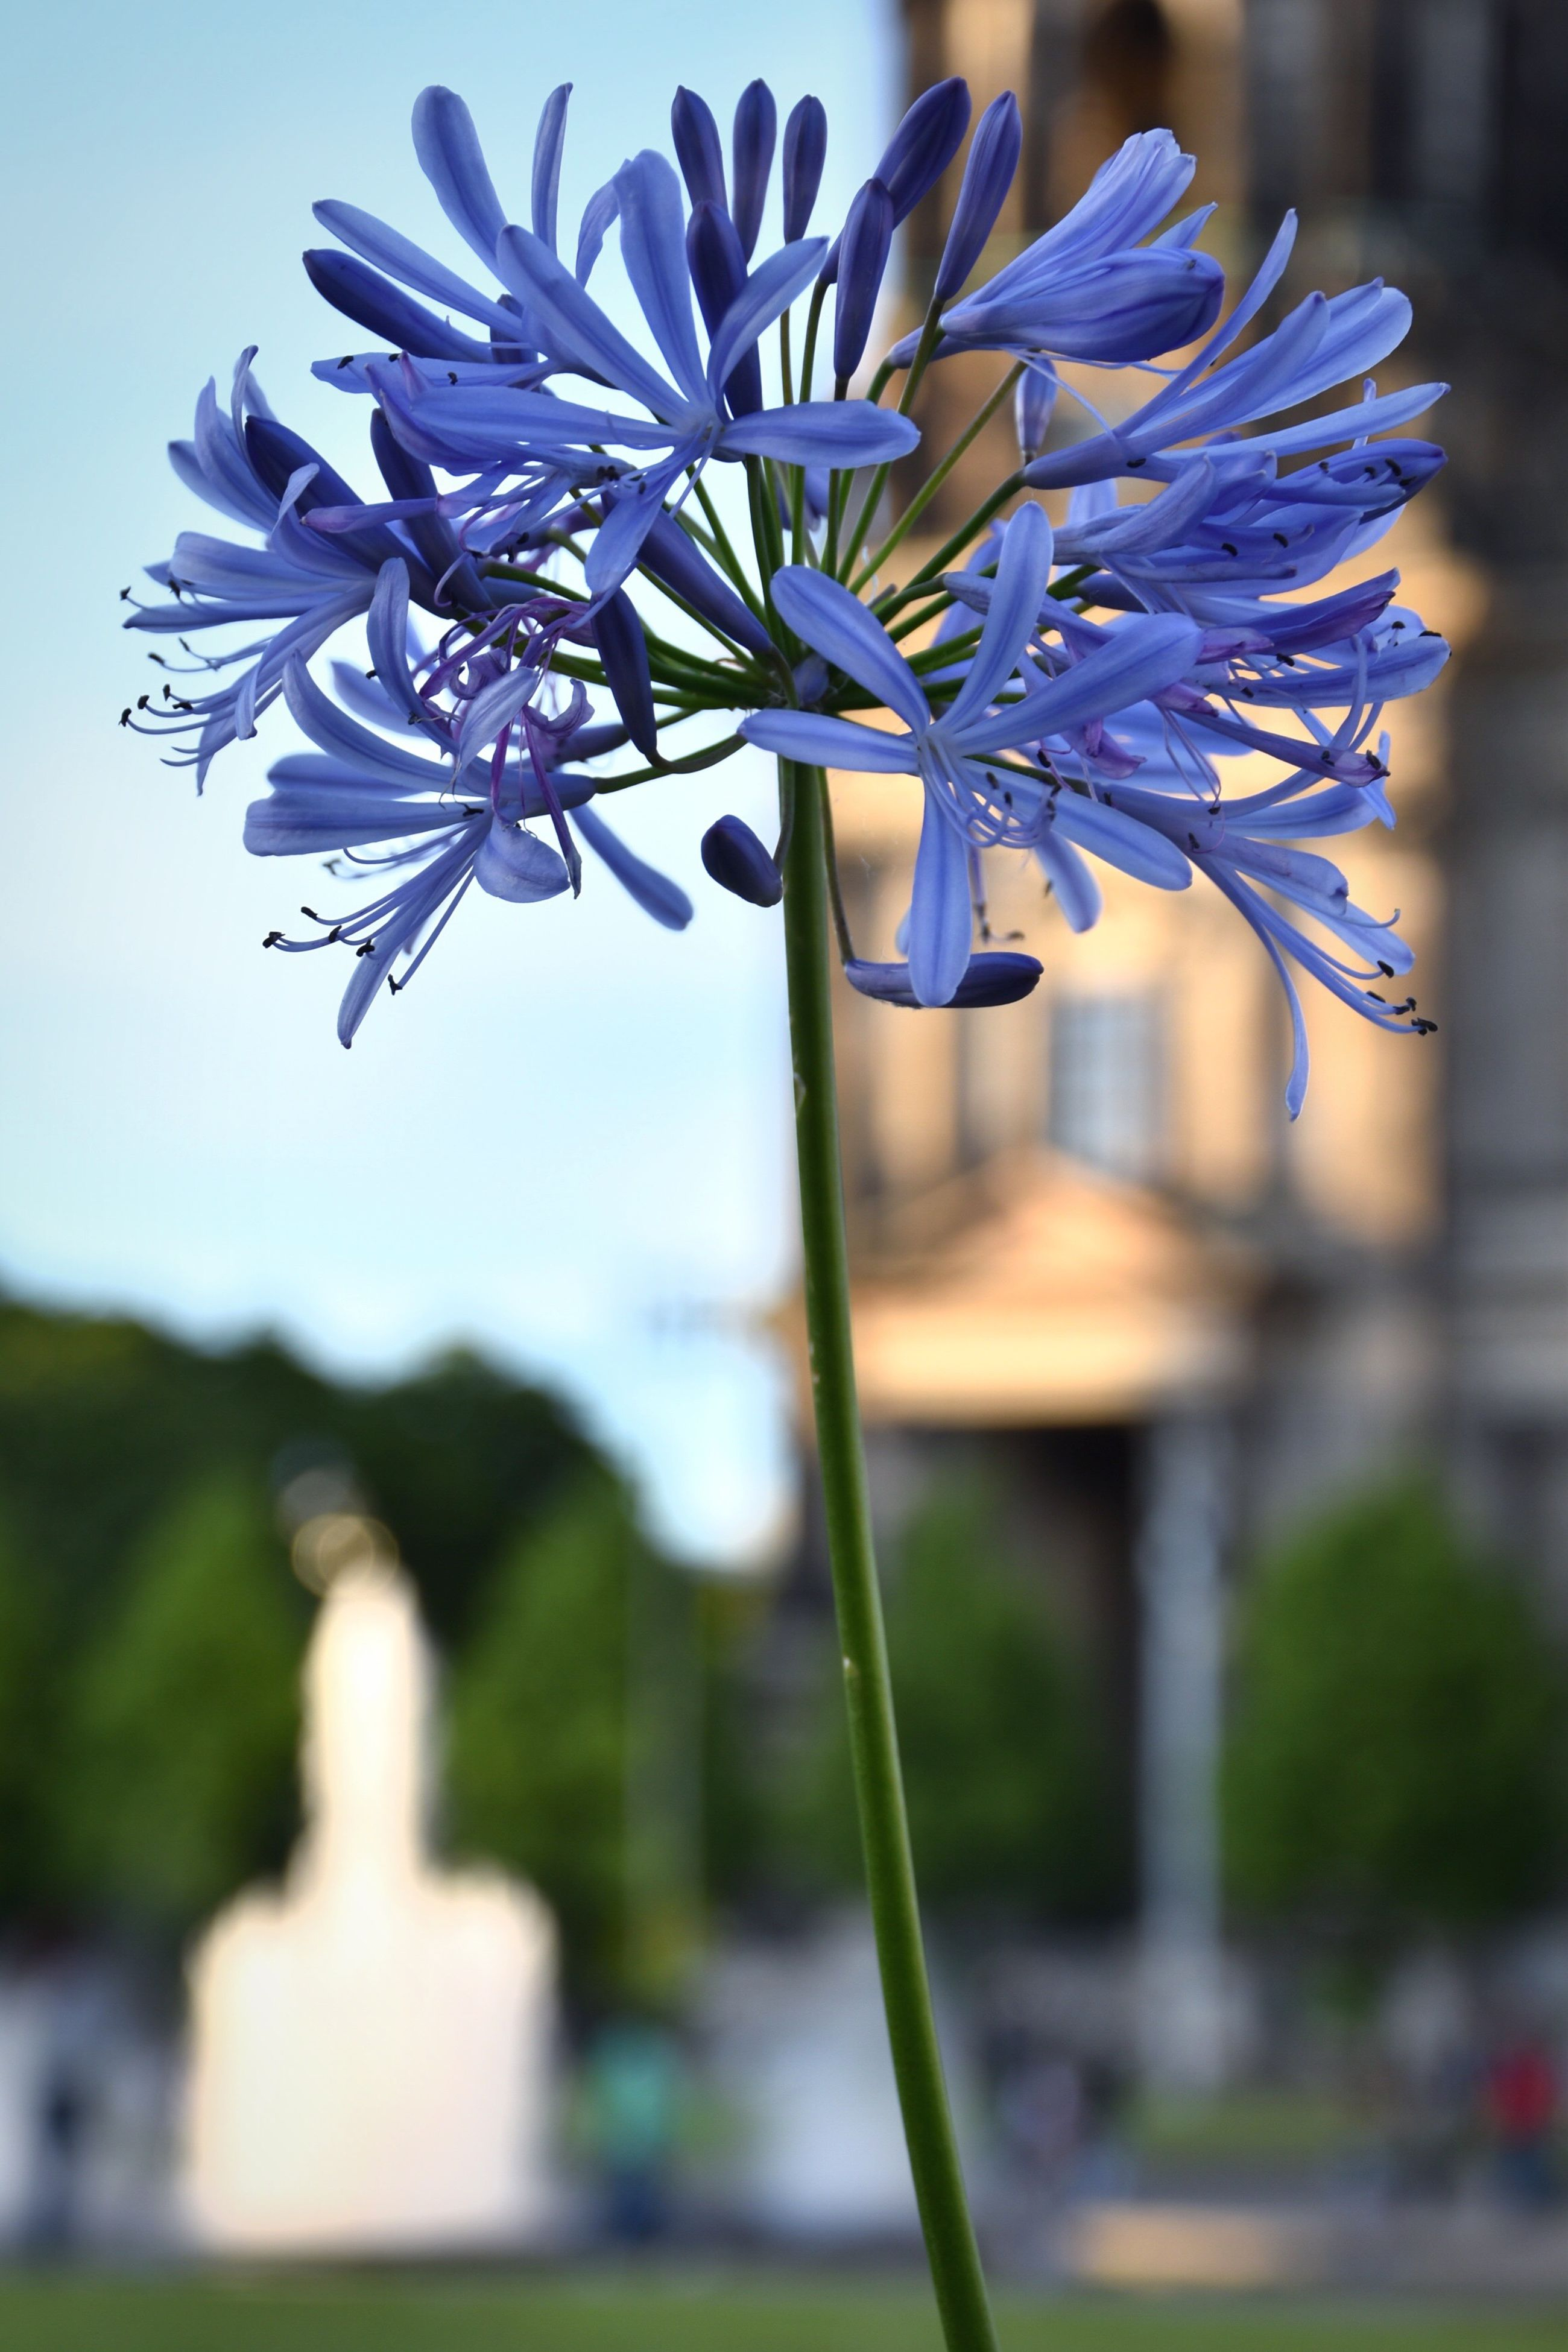 flower, fragility, nature, beauty in nature, petal, growth, freshness, focus on foreground, plant, outdoors, no people, day, purple, flower head, close-up, blooming, hyacinth, sky